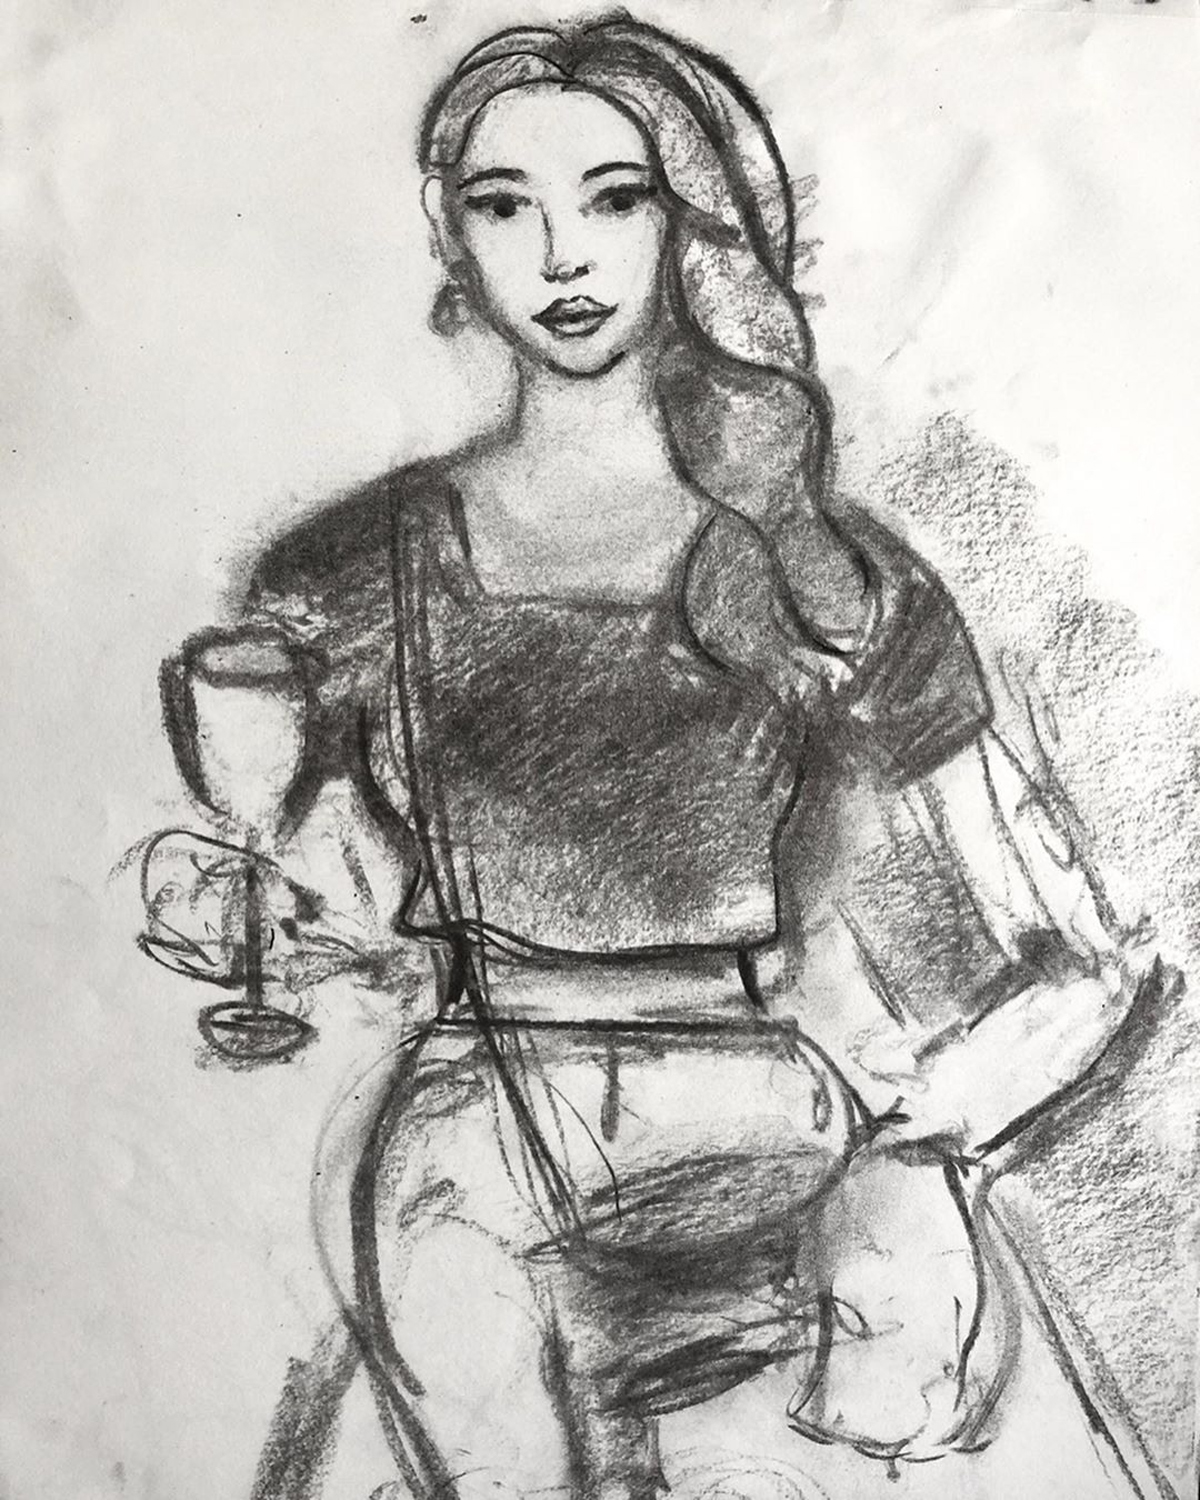 katrina-eugenia-charcoal-drawings-the-beatrice-inn-nyc-charcoal-on-paper-drawn-from-life-artist-nyc-live-artist-art-drawing81.jpg